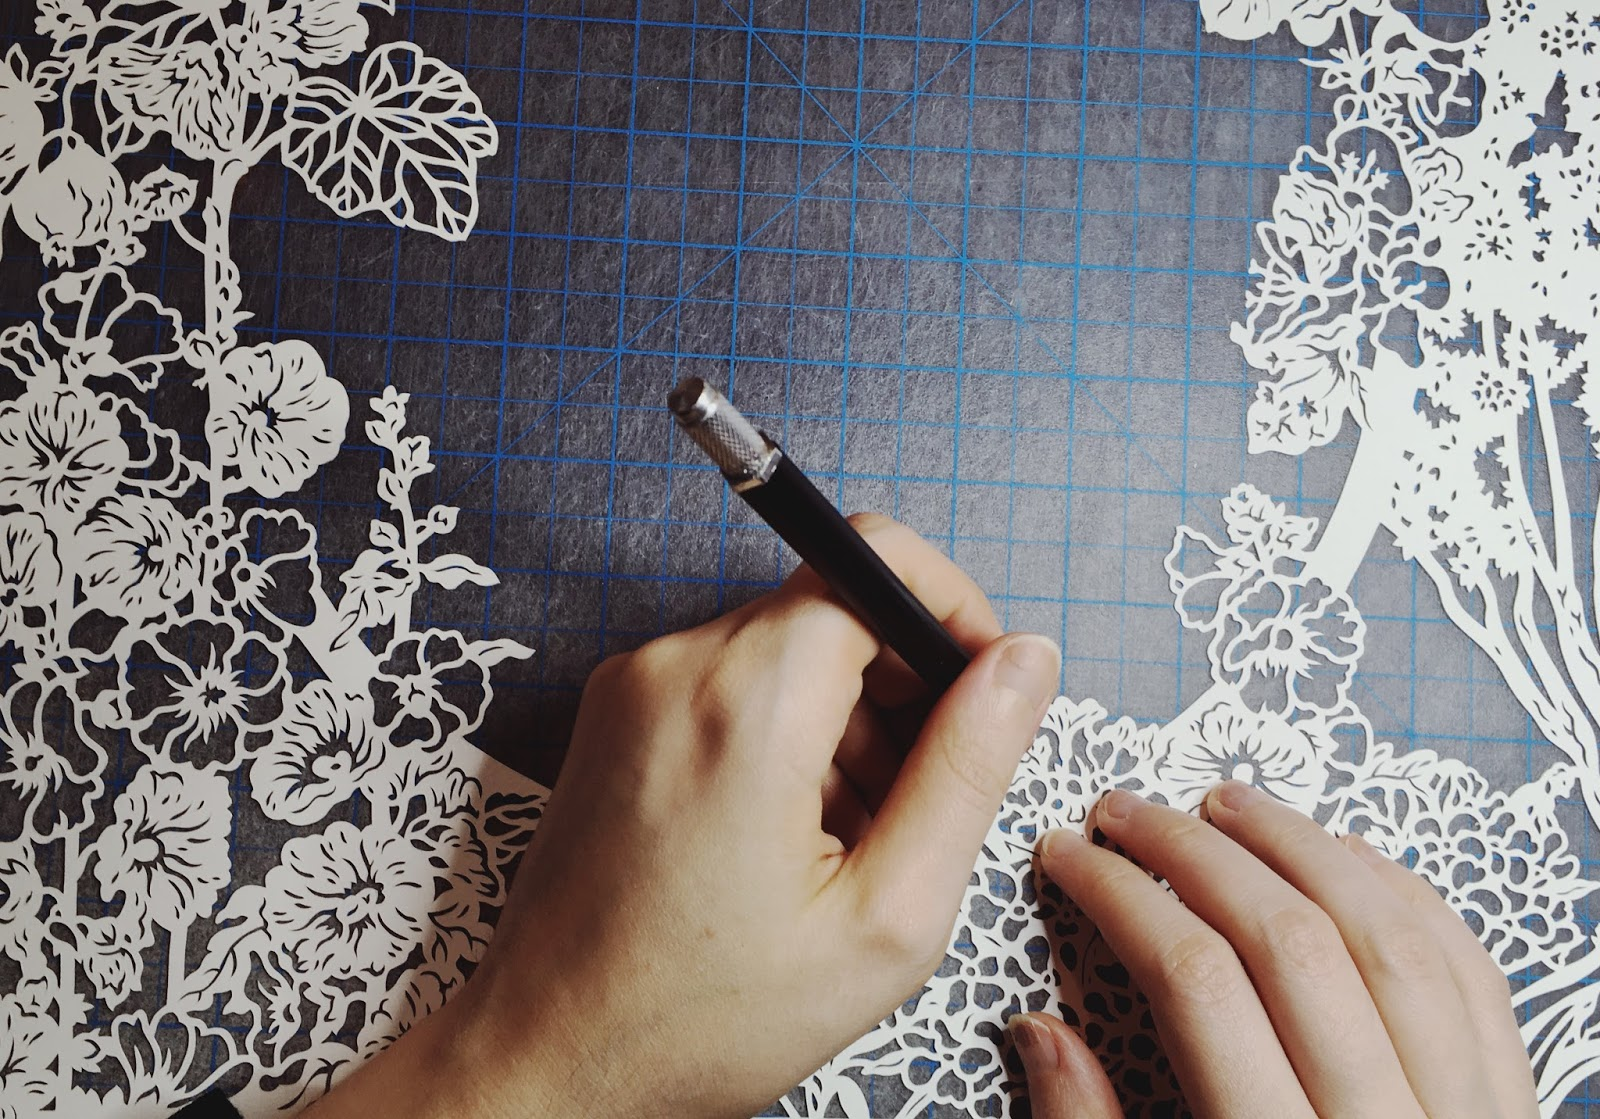 papercut artist Naomi Shiek papercutting a custom design quaker ketubah in her studio